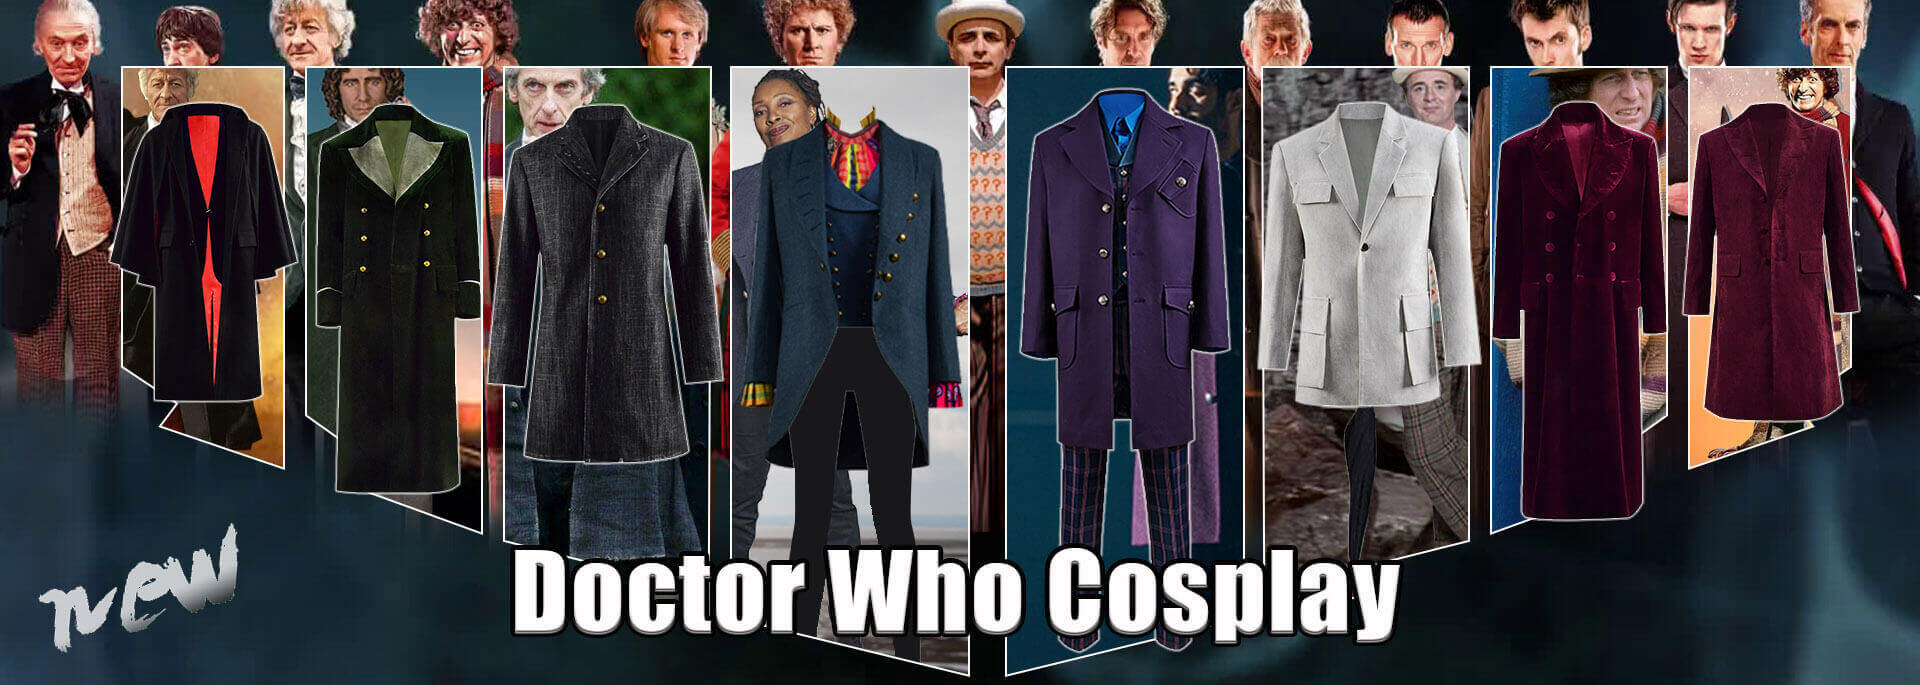 Doctor Who Cosplay Costume